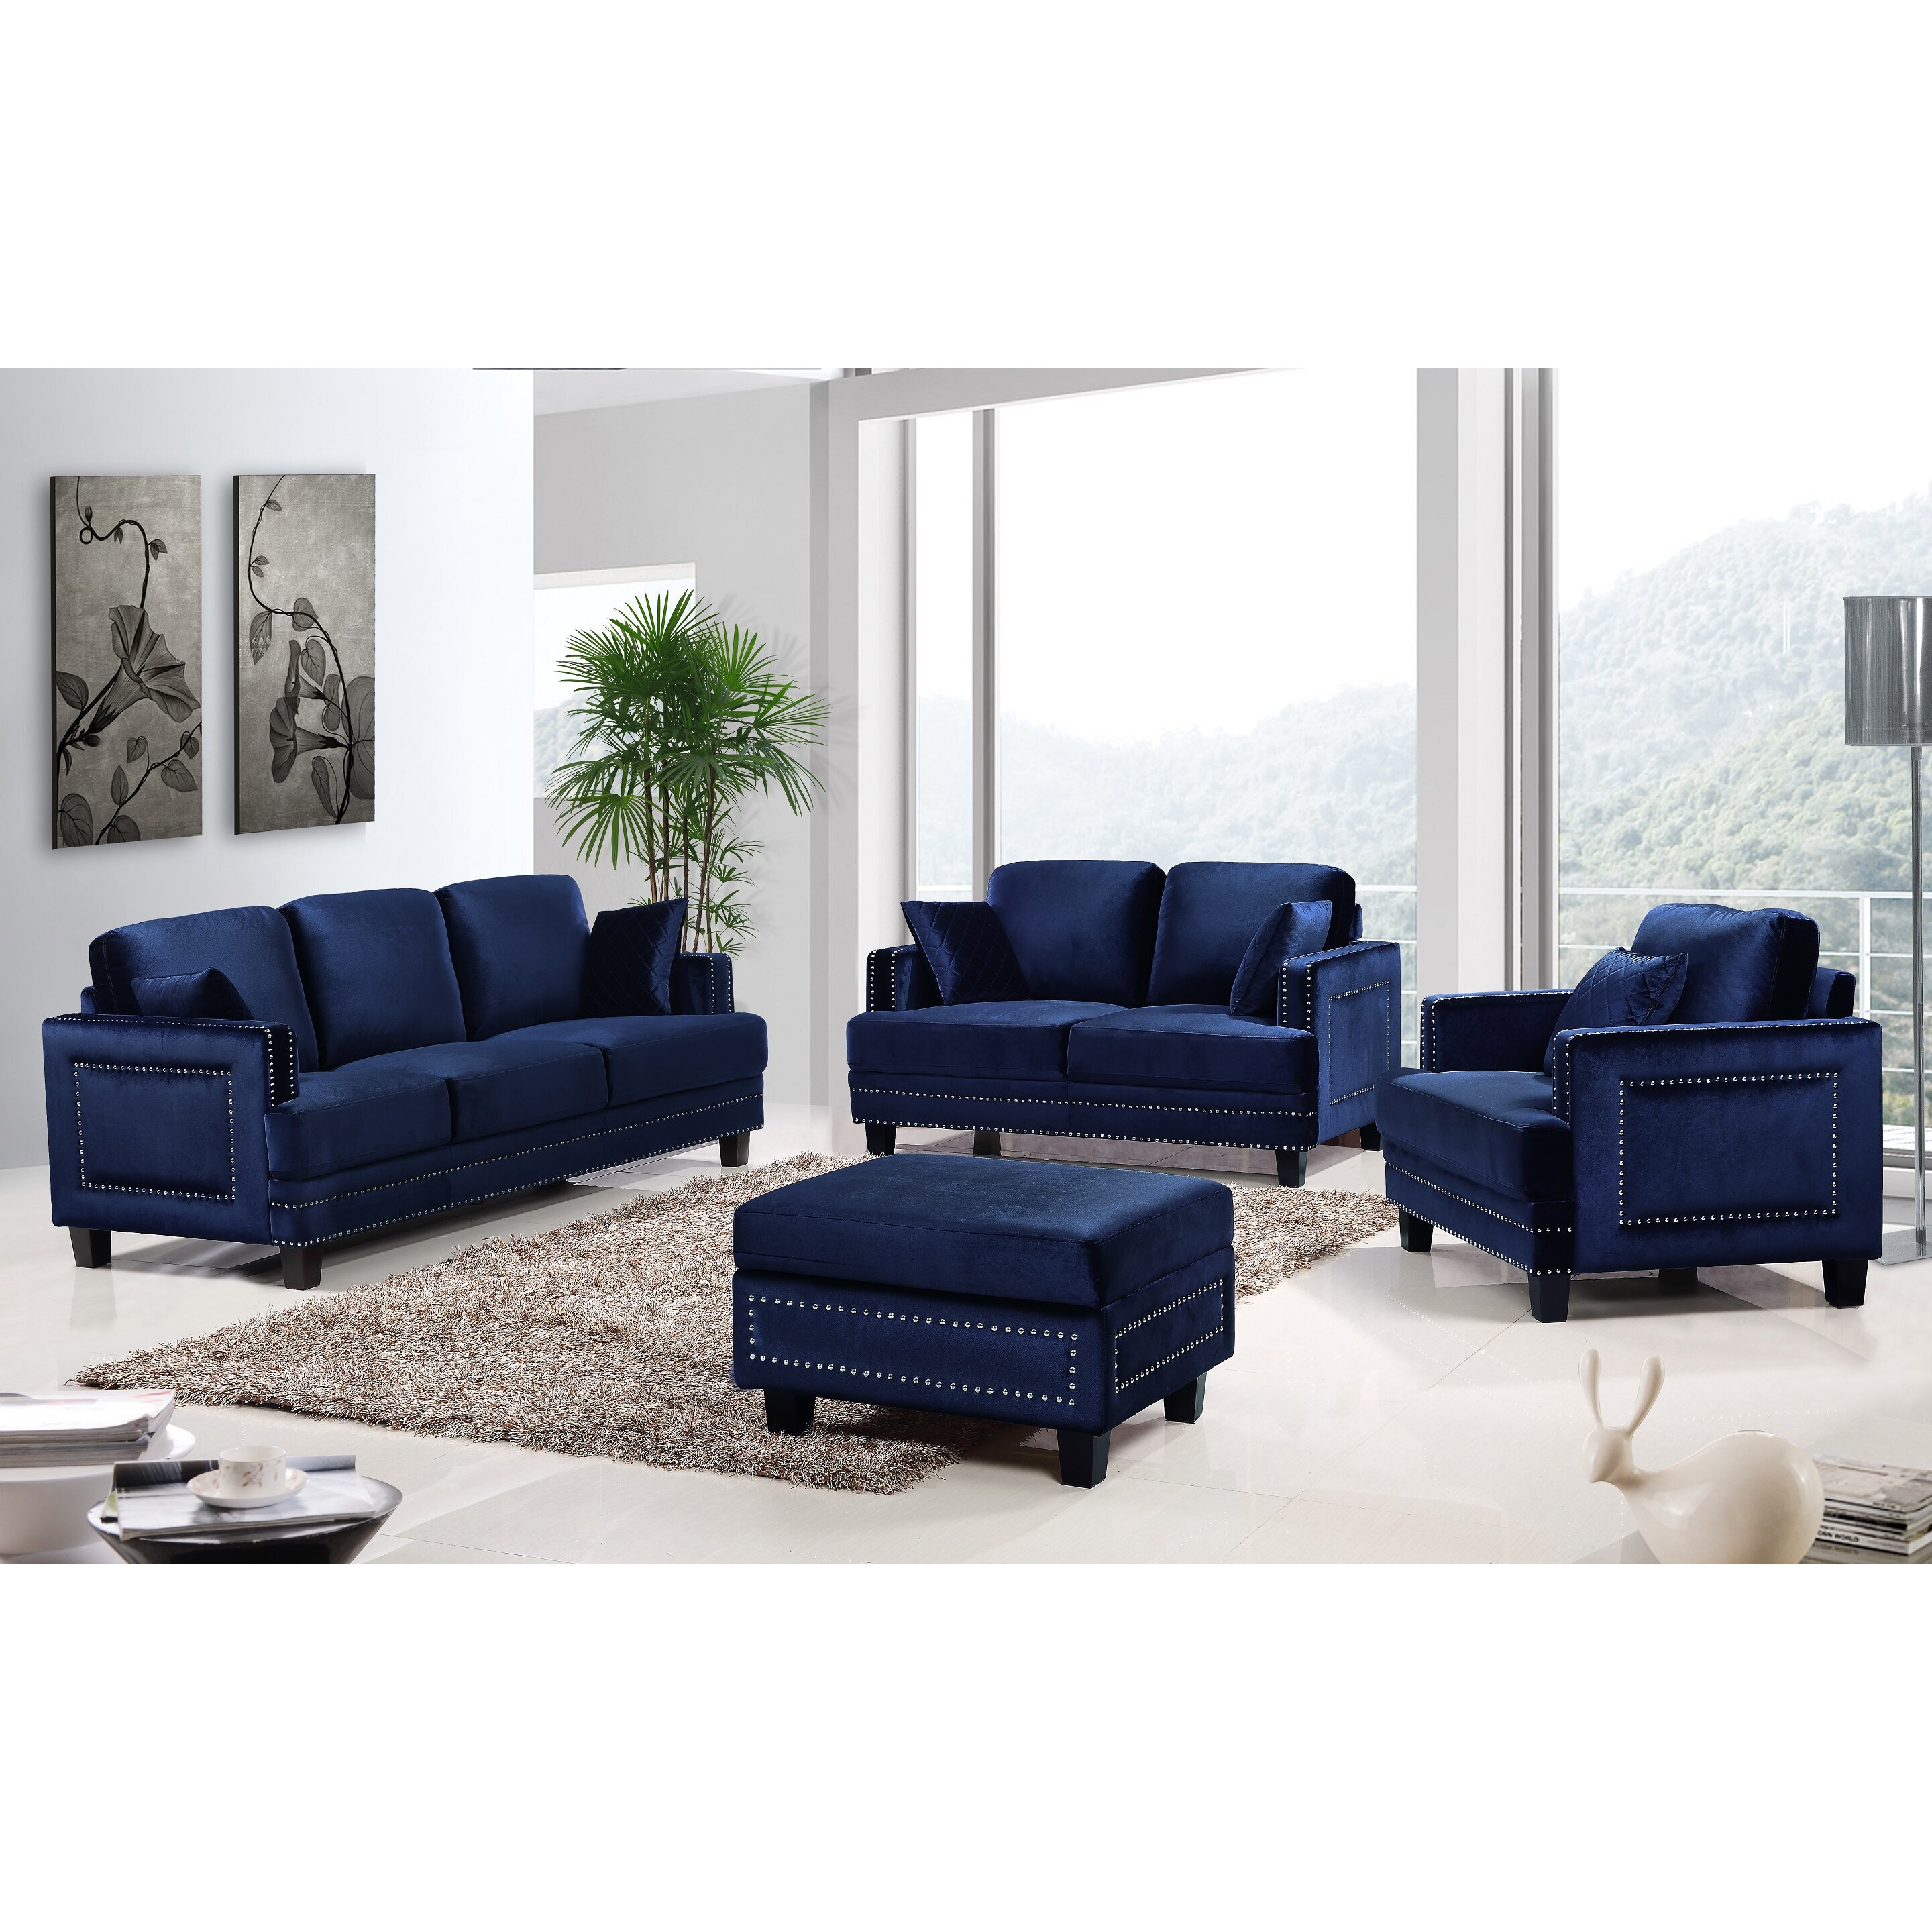 Meridian furniture usa ferrara nailhead loveseat reviews for J furniture usa reviews